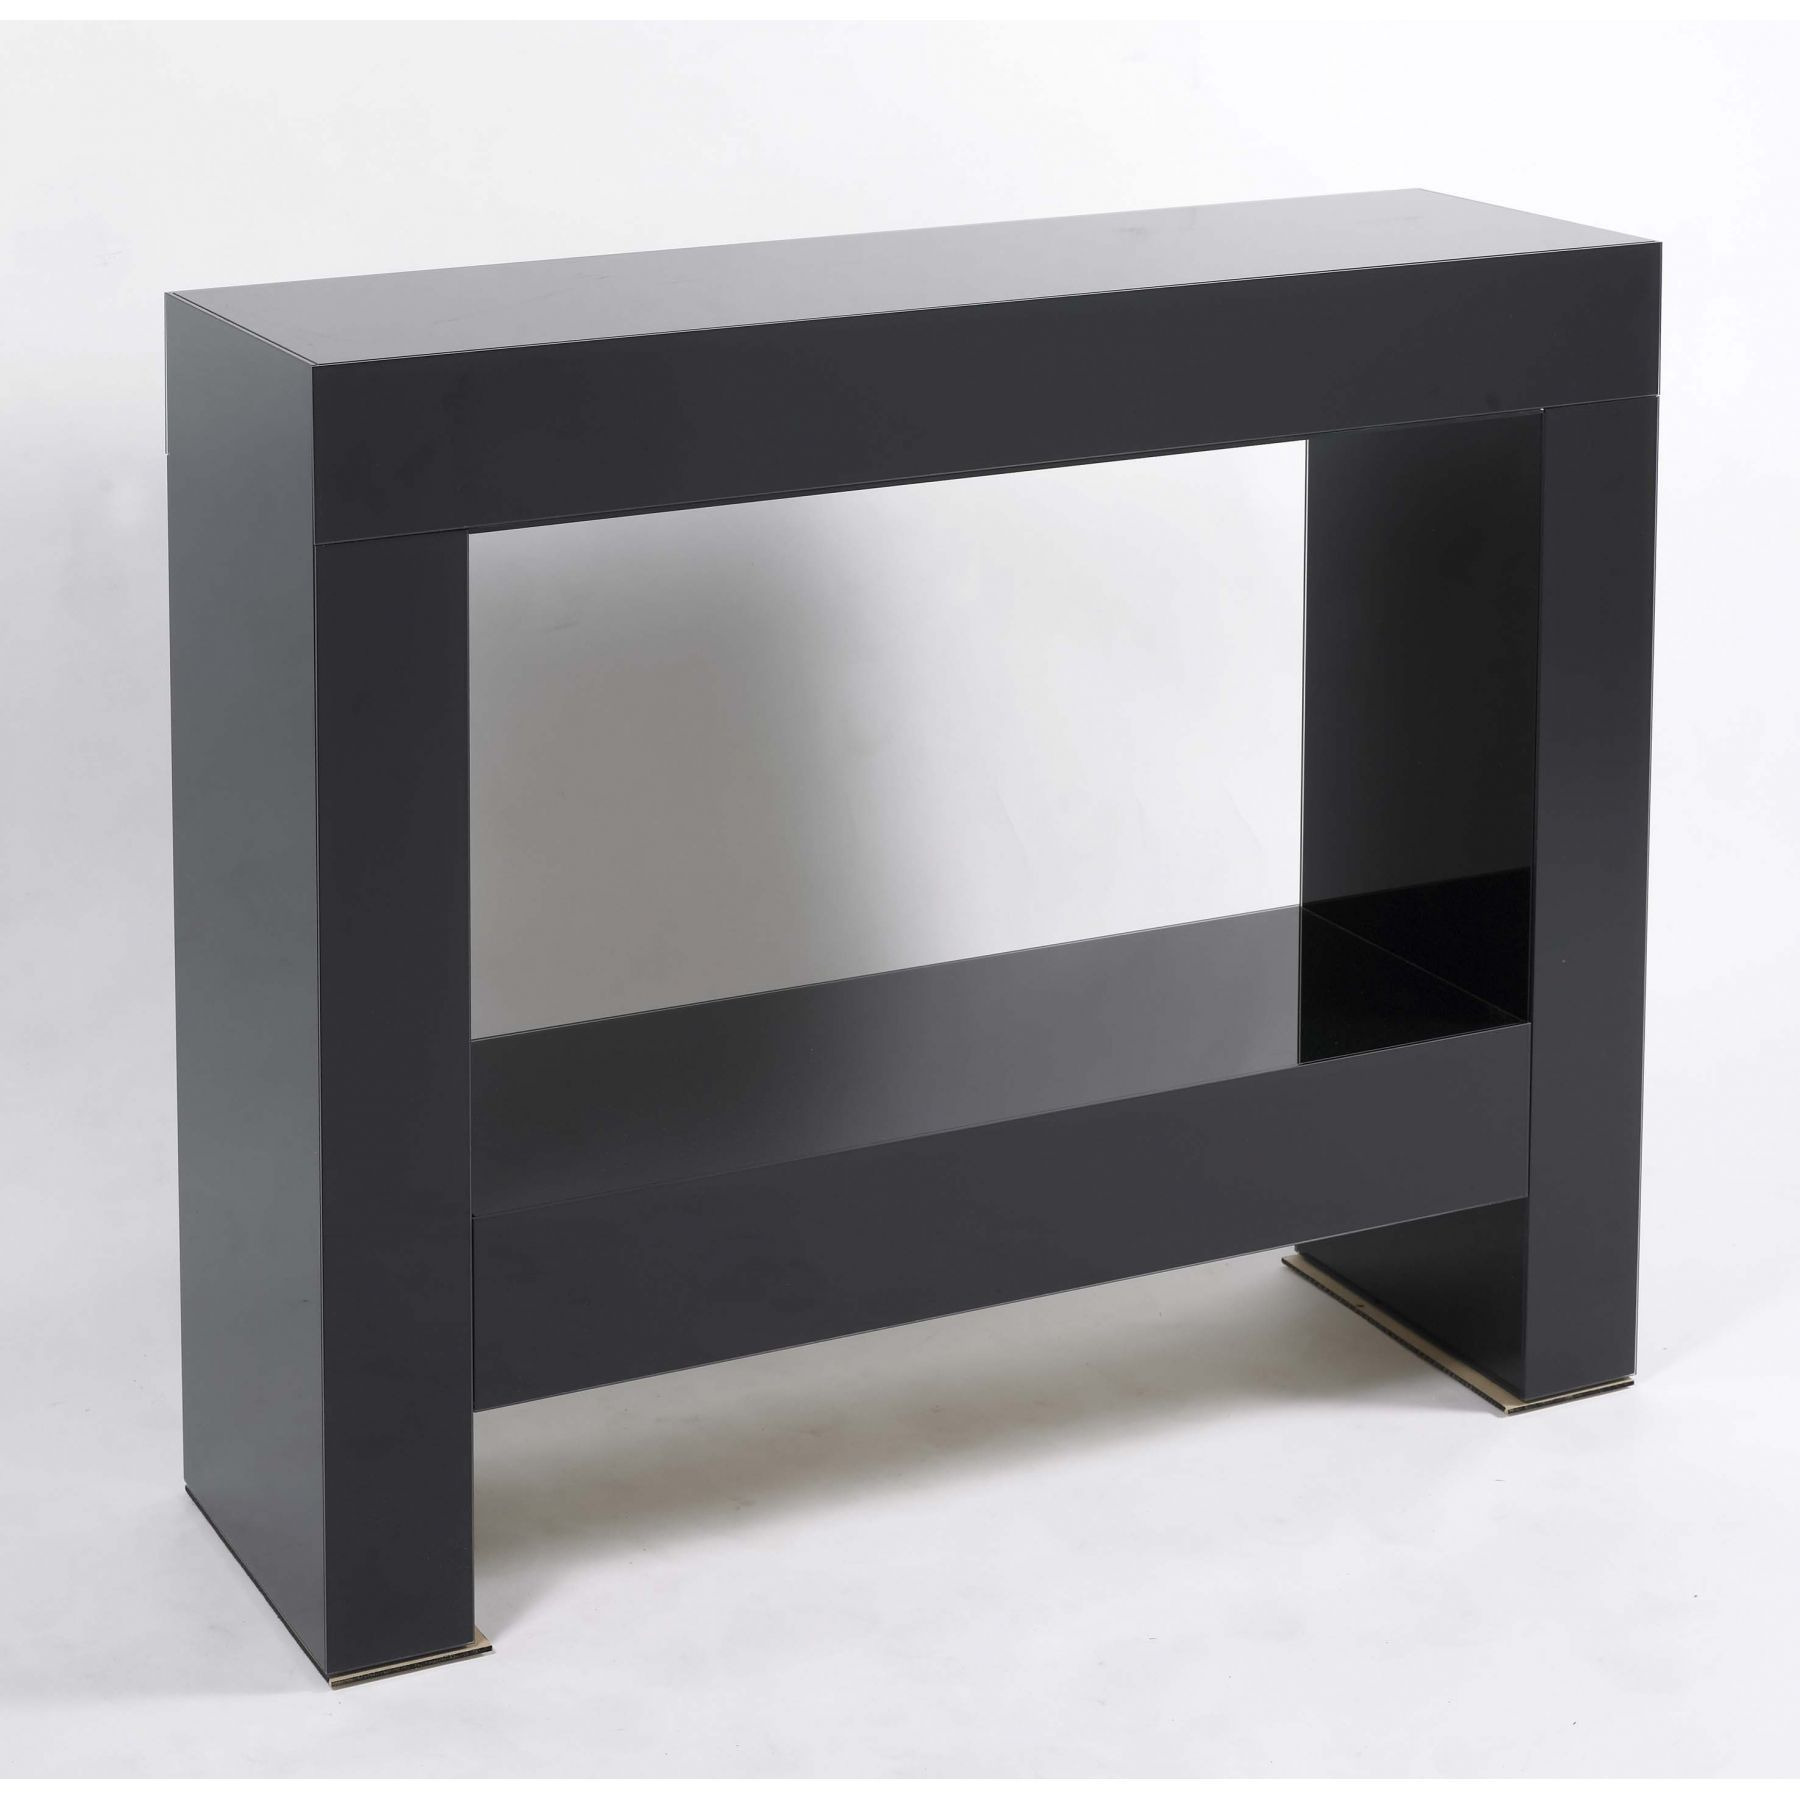 Contemporary Black Parsons Console Table With Glossy Finish Pertaining To Parsons Clear Glass Top & Dark Steel Base 48x16 Console Tables (View 3 of 30)